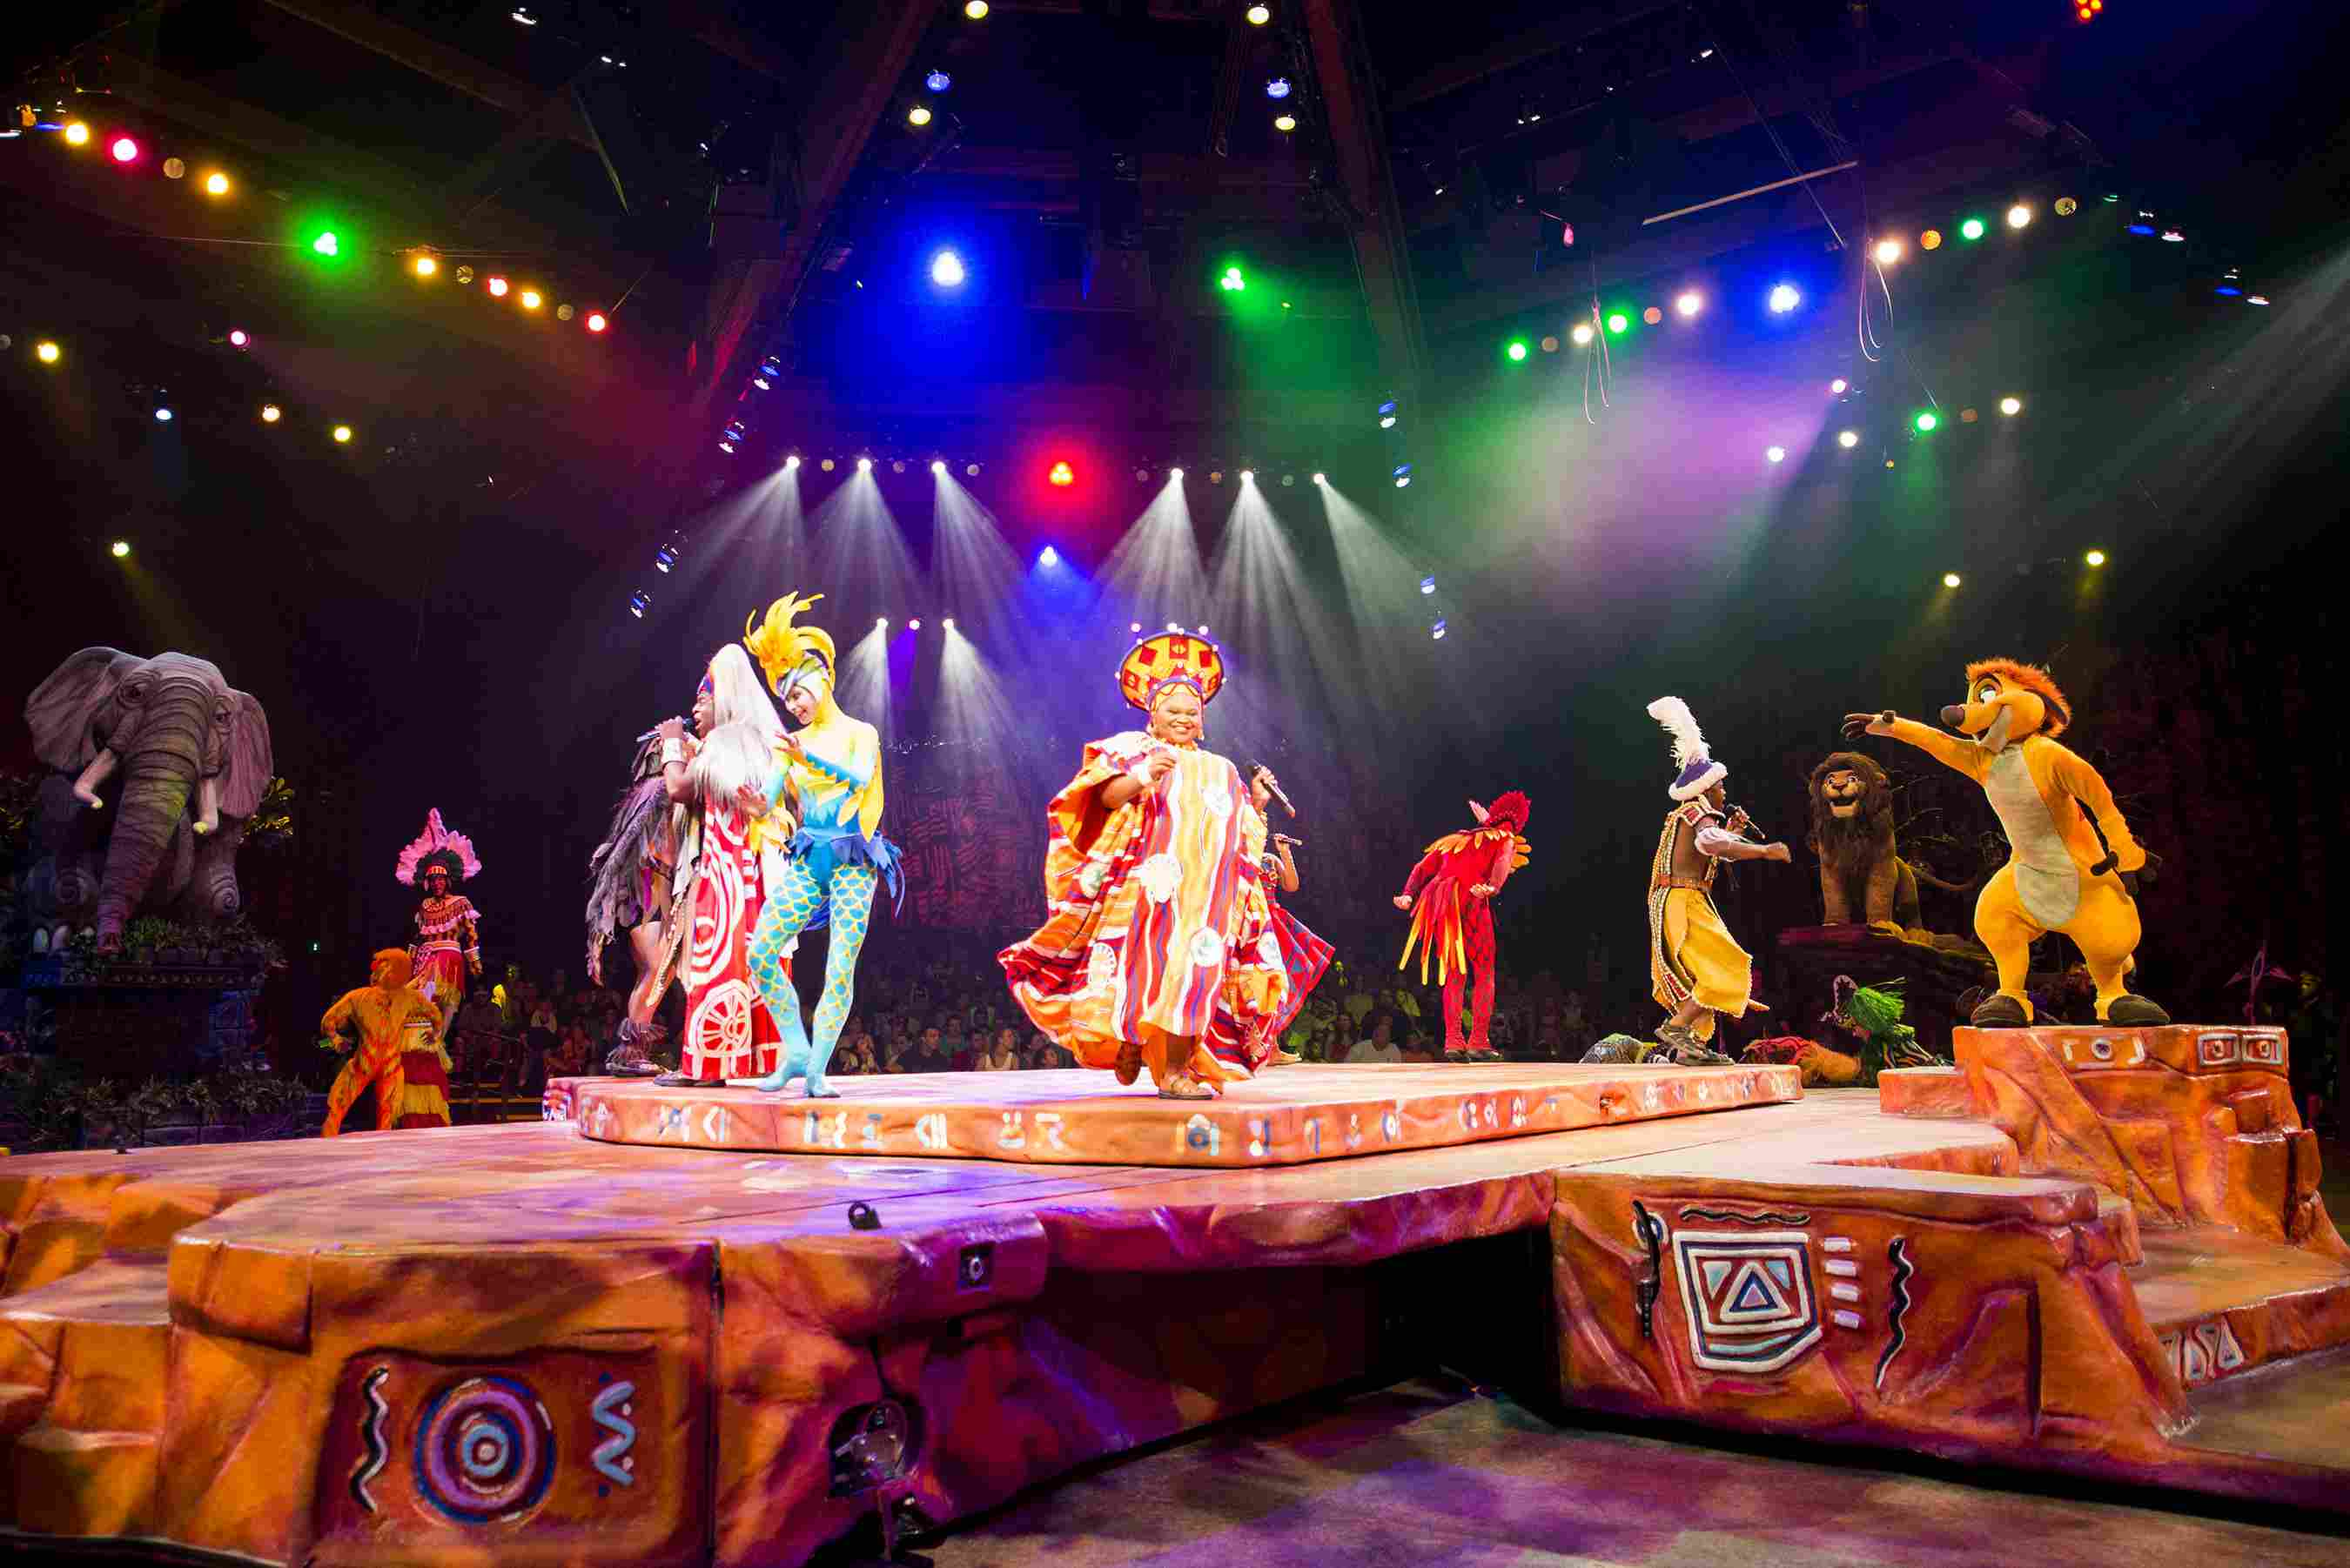 """Festival of the Lion King, the popular, high-energy live musical at Disney's Animal Kingdom combines music, puppetry and pageantry inspired by Disney's animated film classic, """"The Lion King."""""""